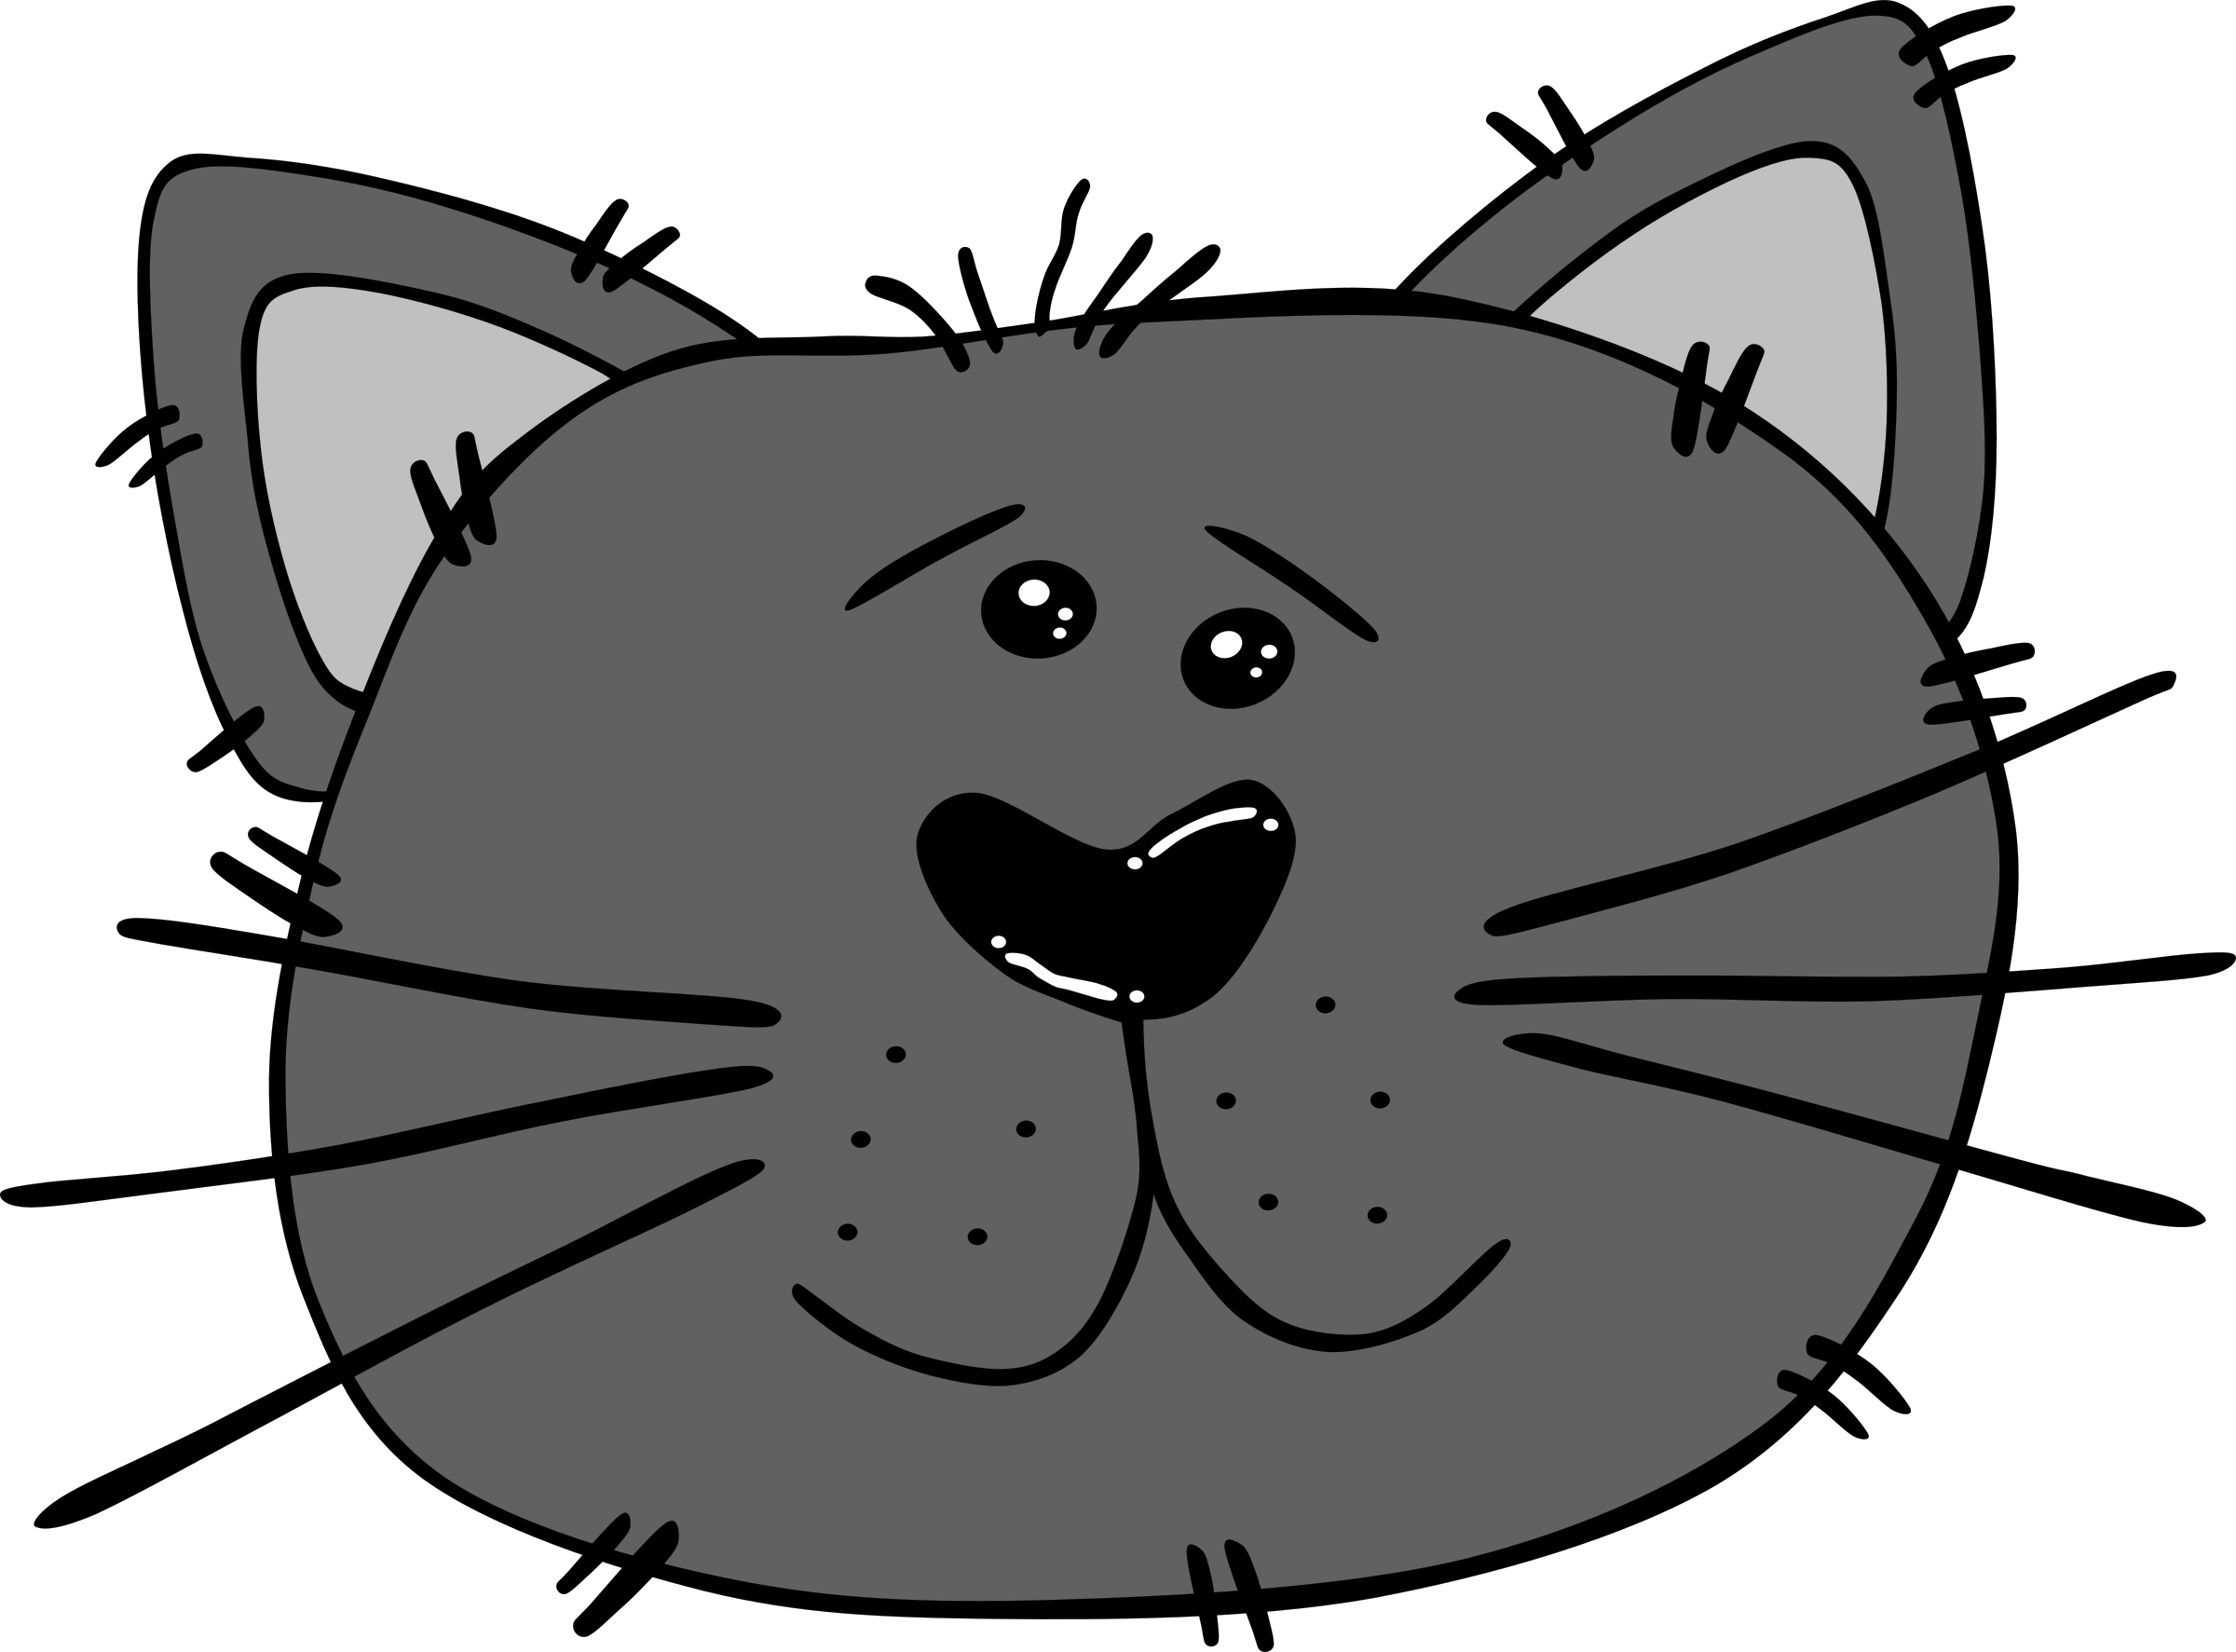 Clipart cat face clip art library download Clipart - Cartoon Cat Face clip art library download